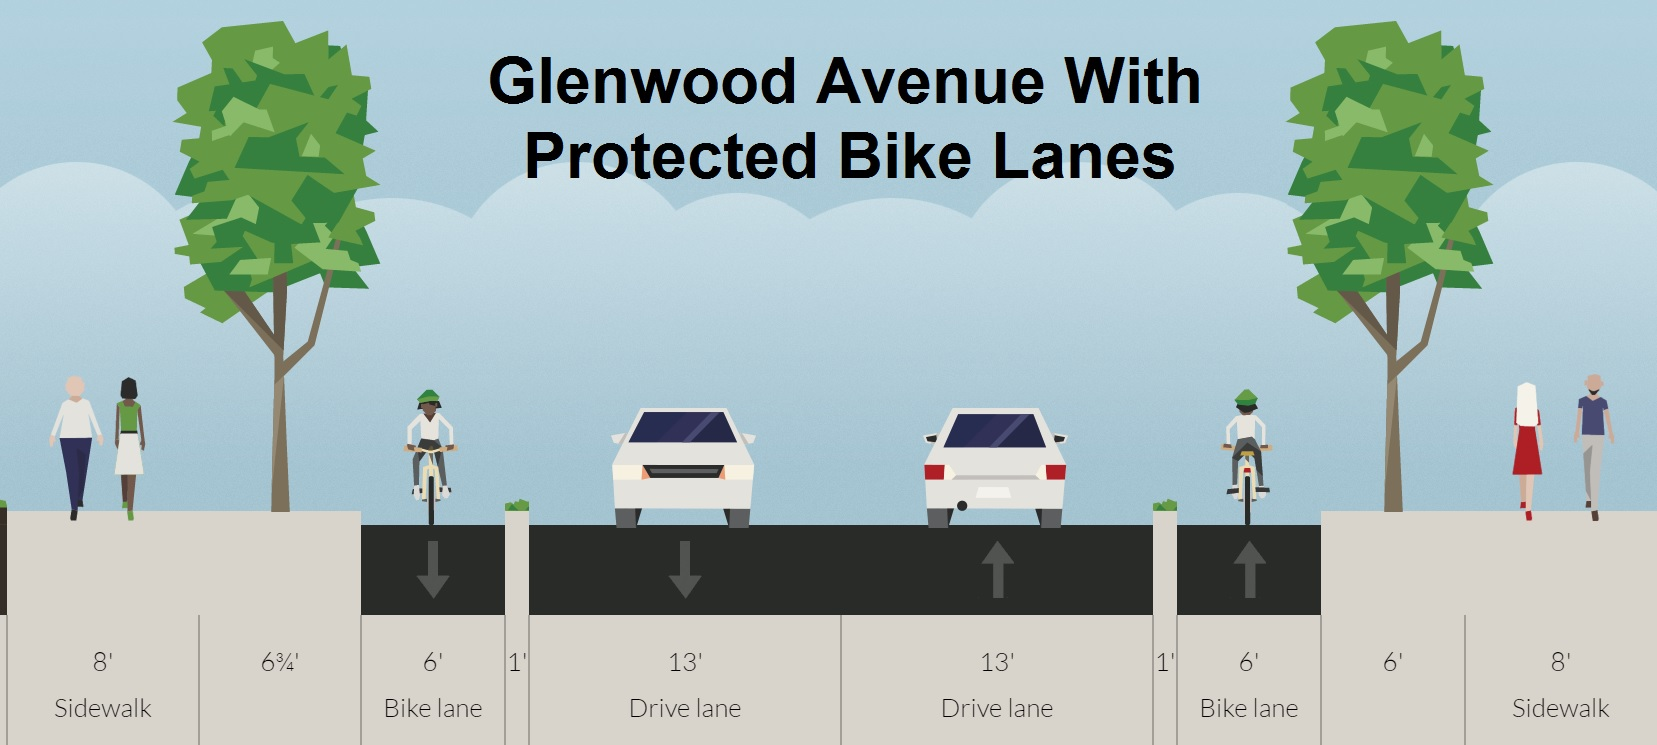 glenwood-ave-with-protected-bike-lanes-zoomed